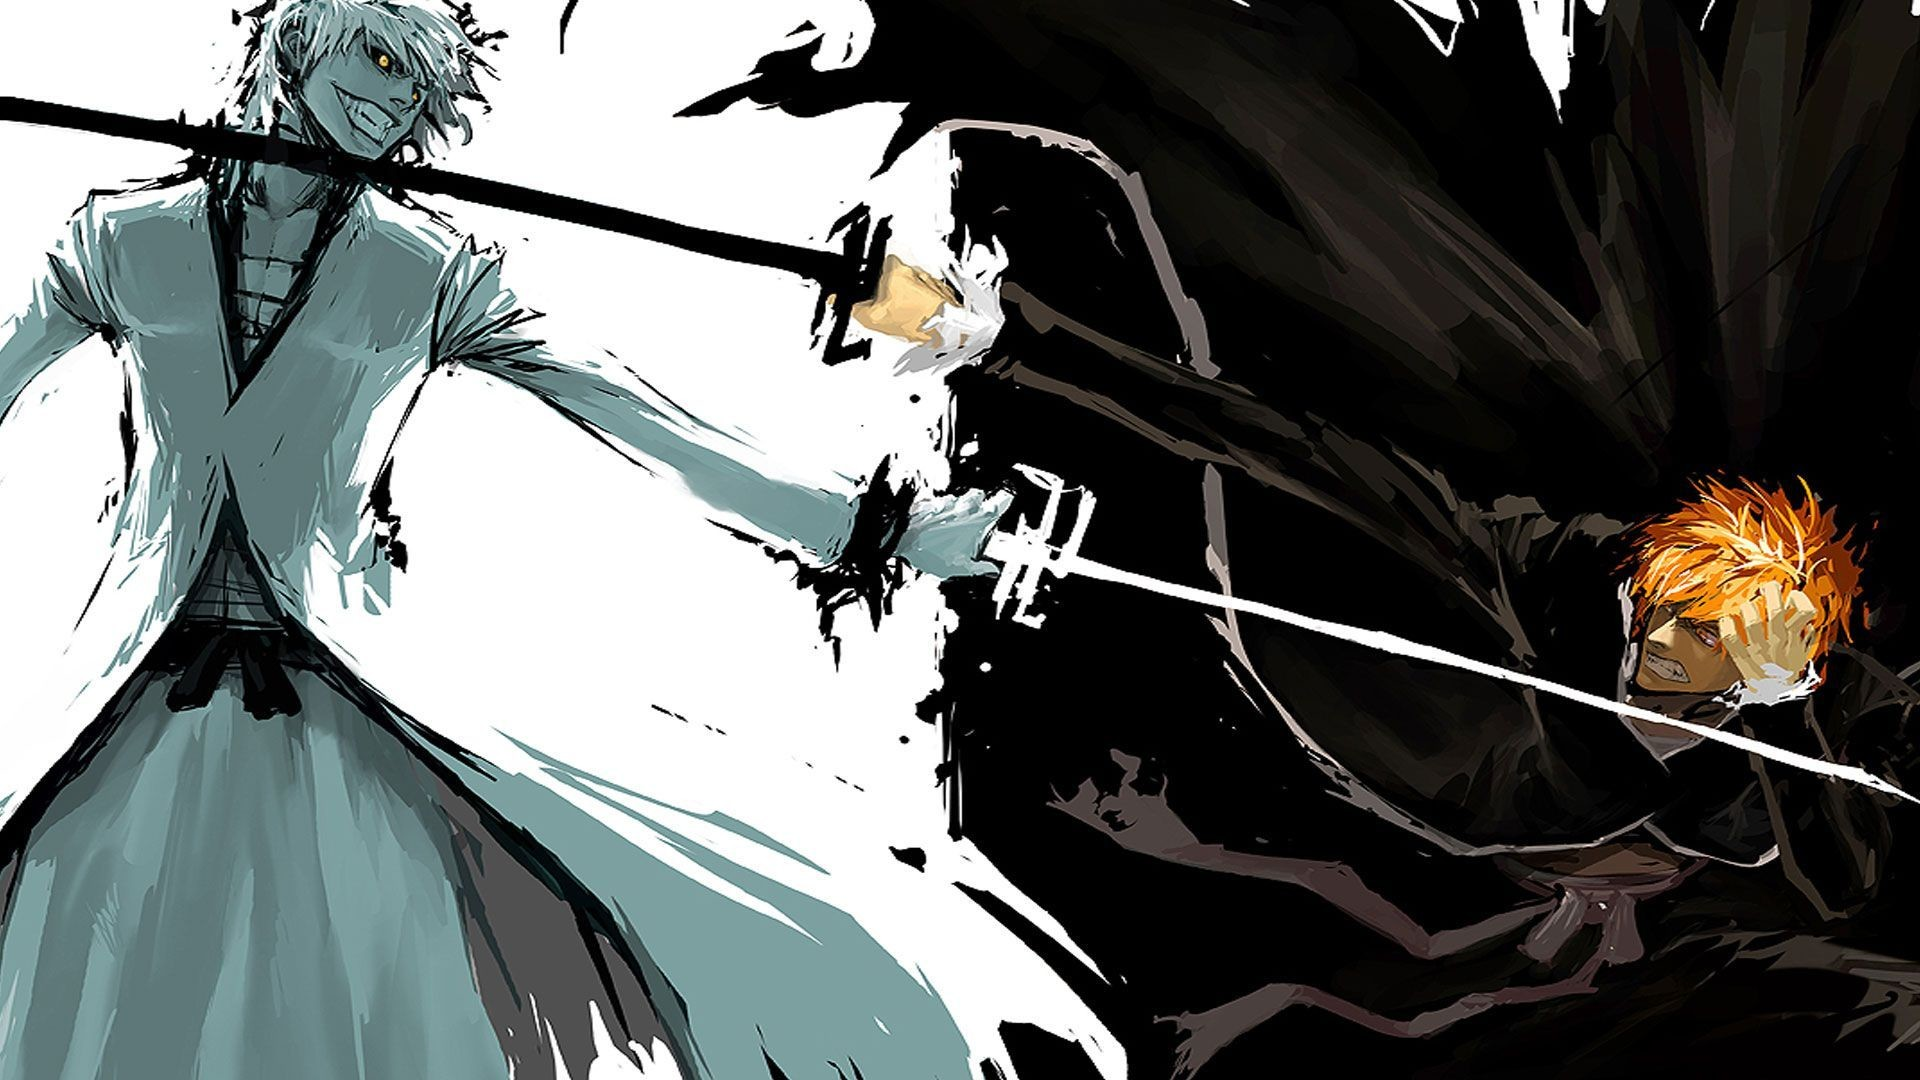 1920x1080 Kurosaki Ichigo and Hollow Ichigo - Bleach HD Wallpaper